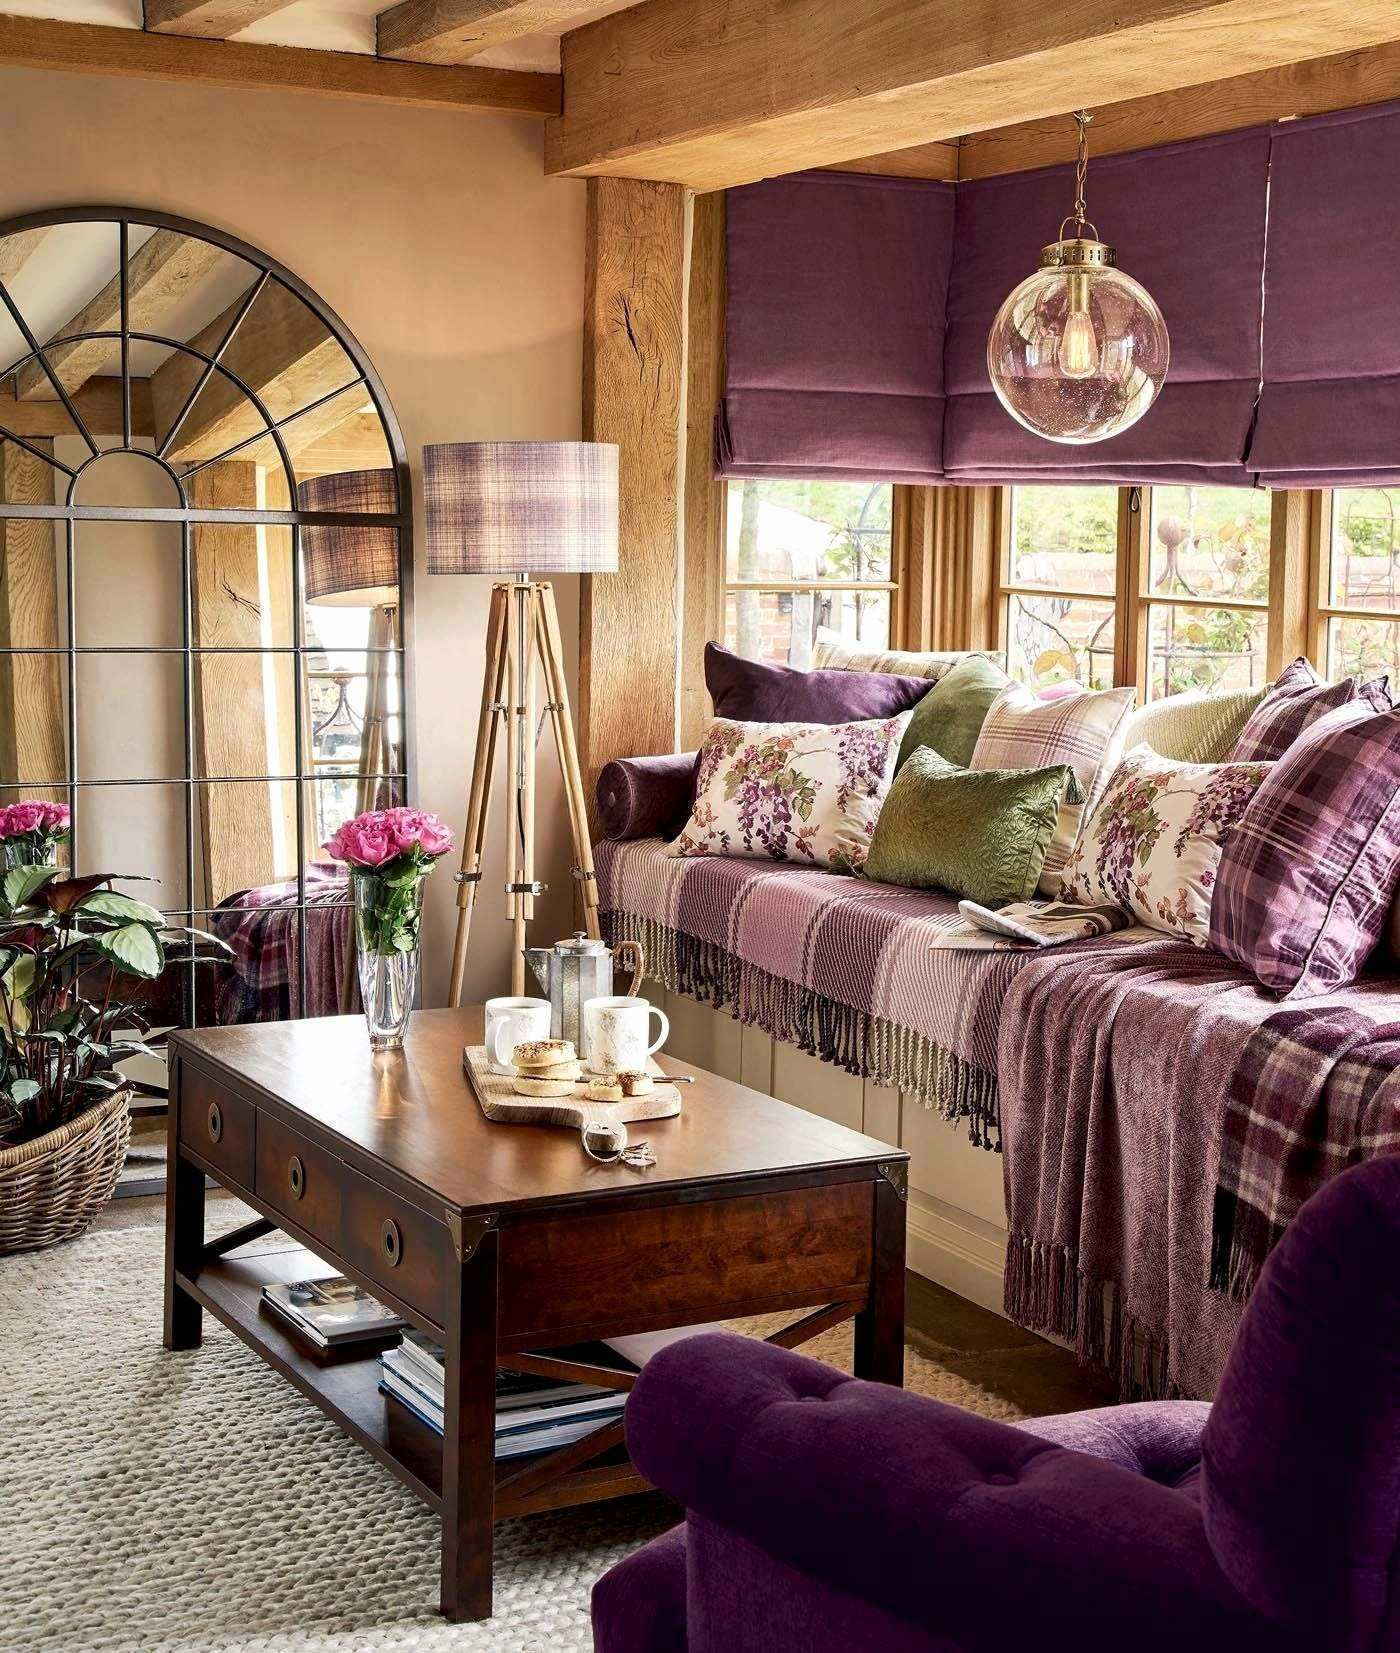 30 Art for Bedroom astonishing Bedroom Wall Wall Quotes for Bedroom